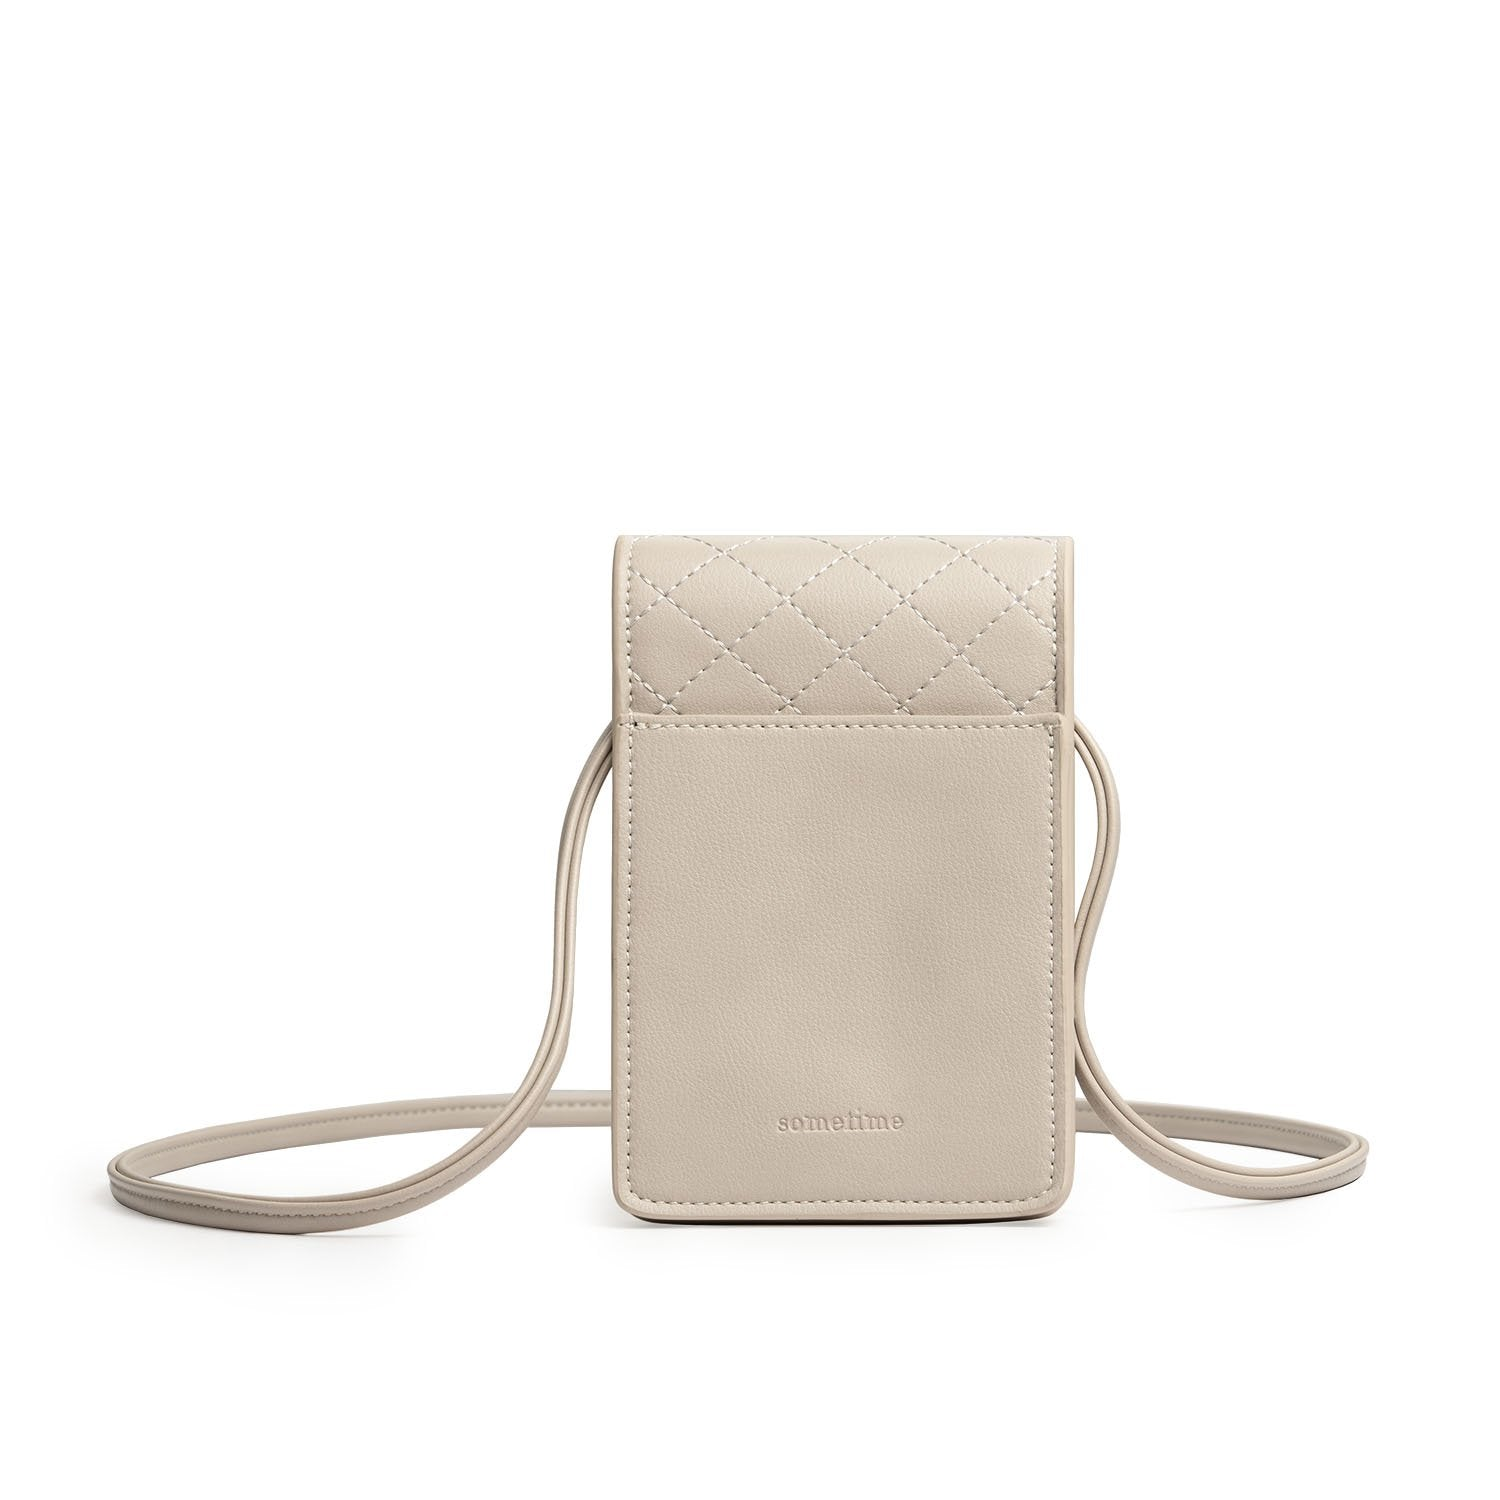 Basta 3 Pochette - Light Gray